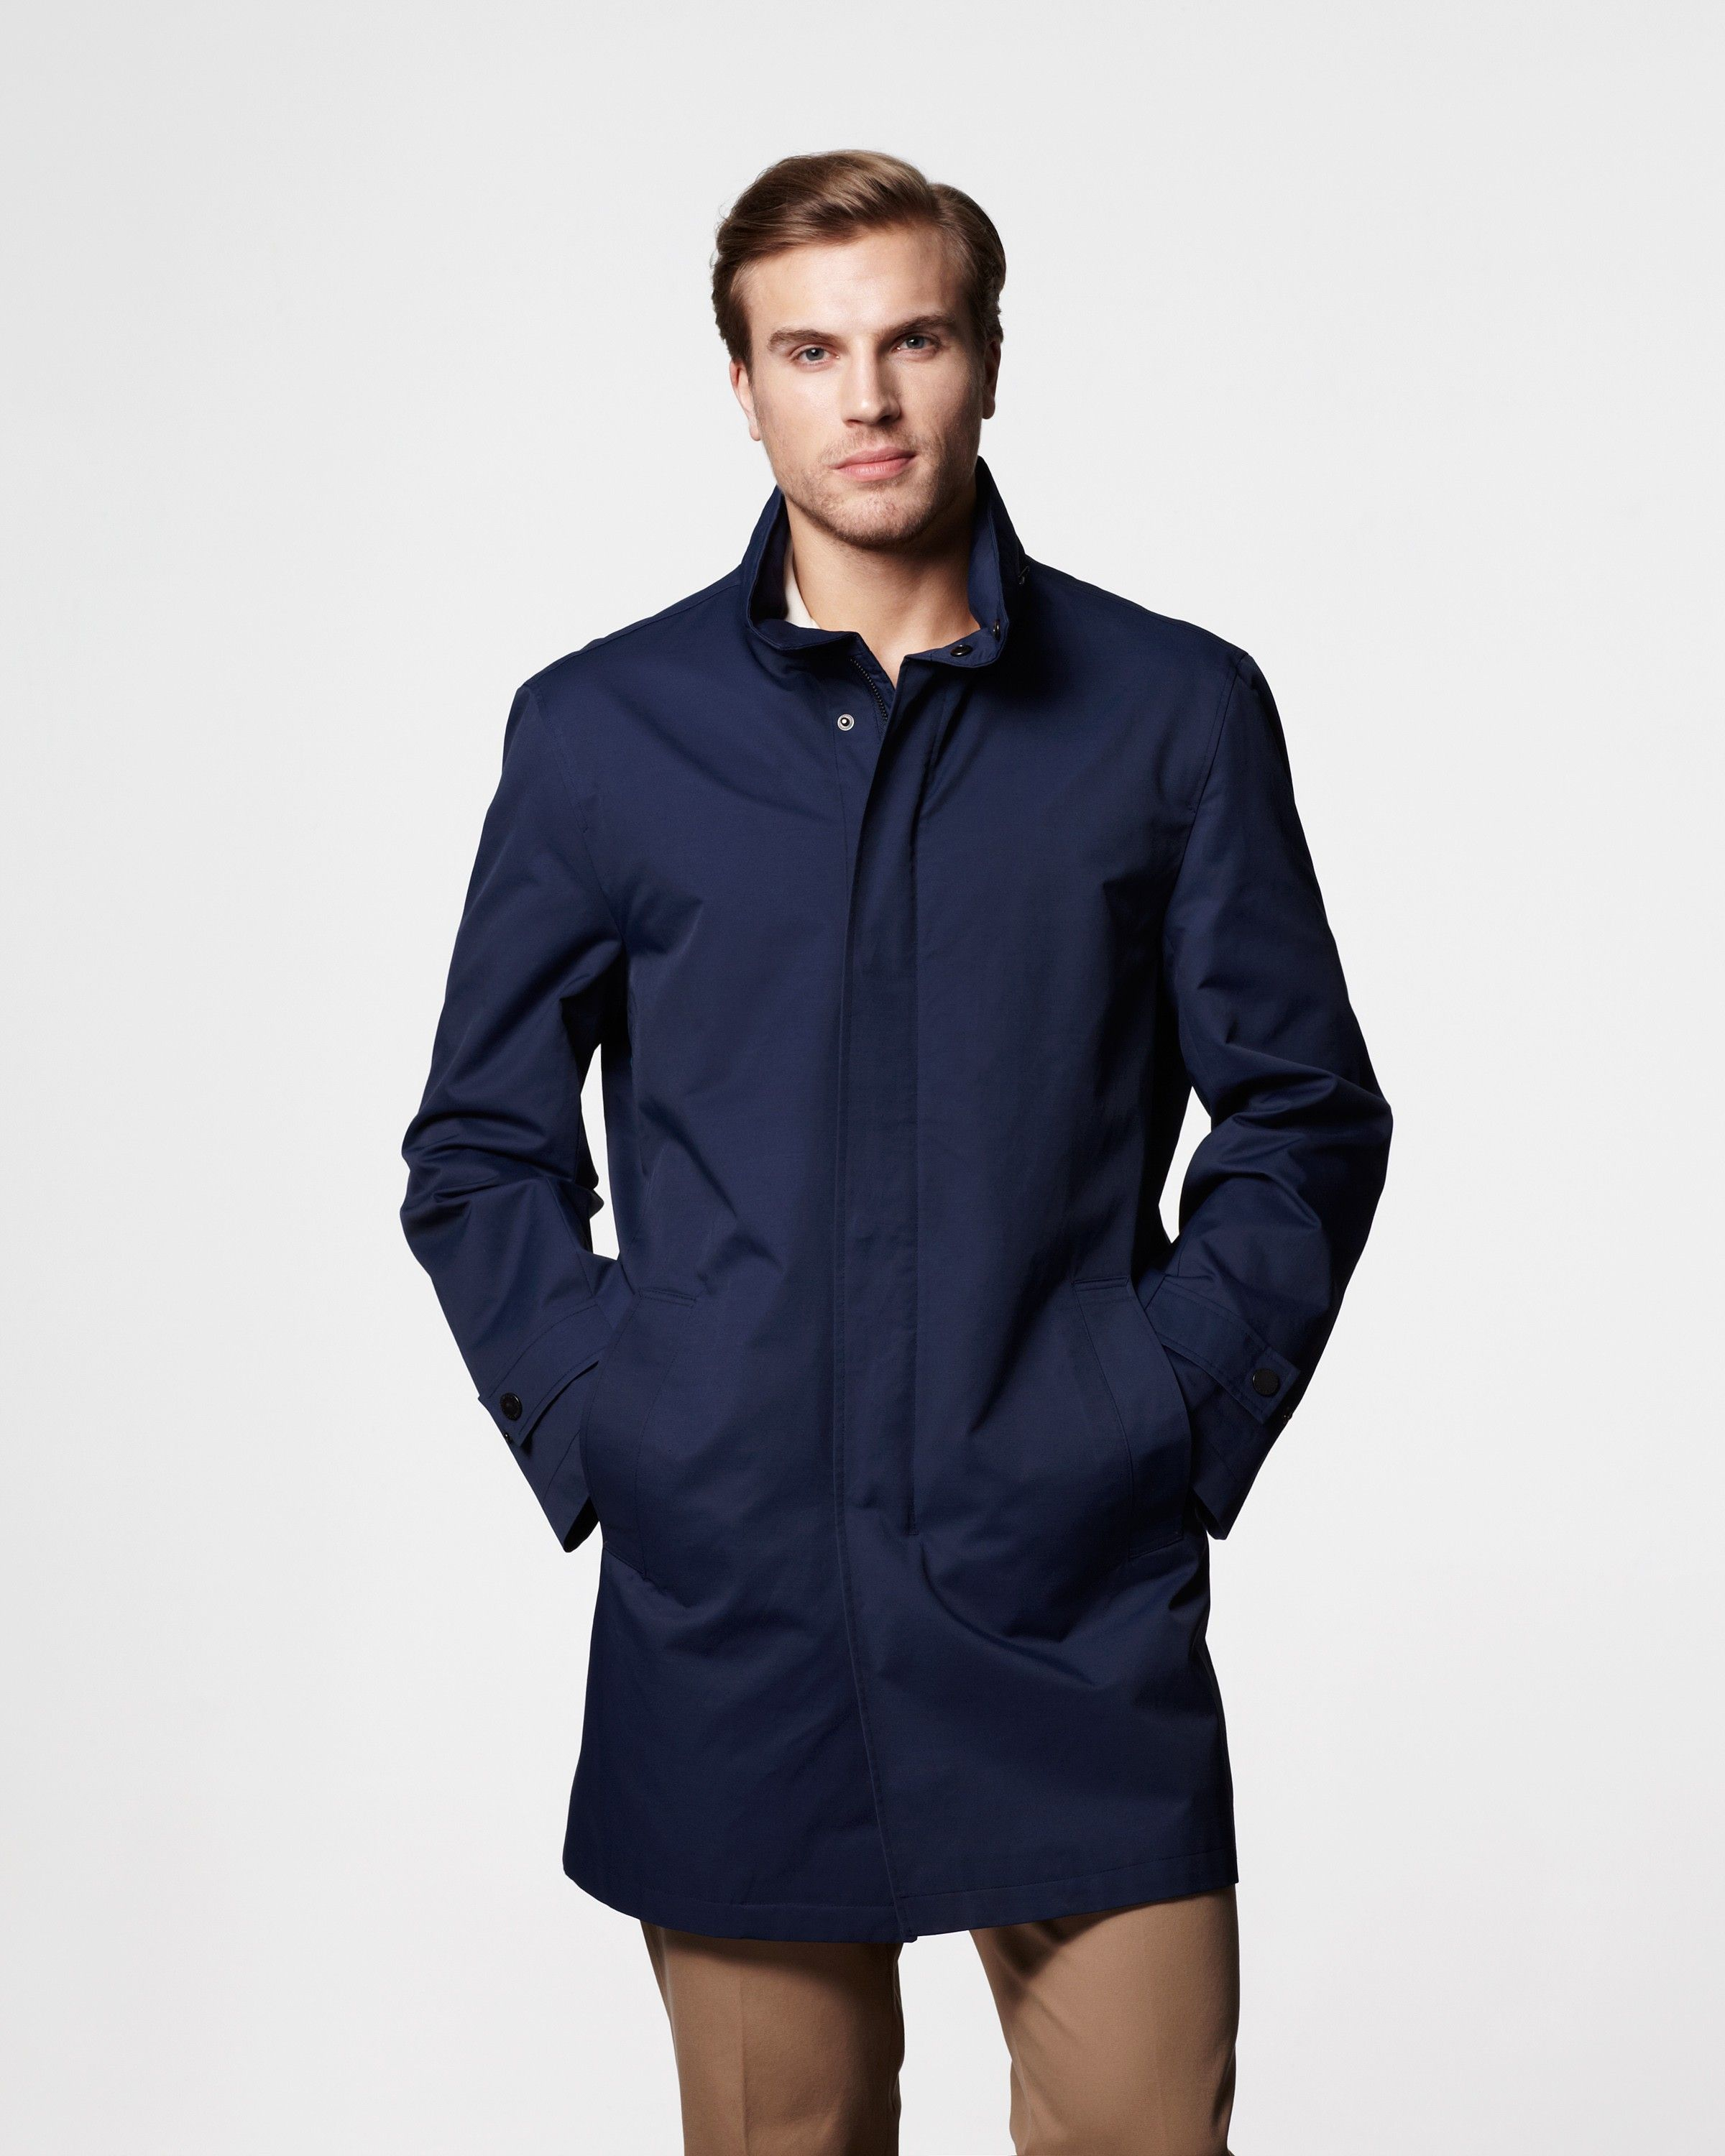 725f62120 Fairfield Lightweight Raincoat for Men | London Fog | Men's raincoat ...